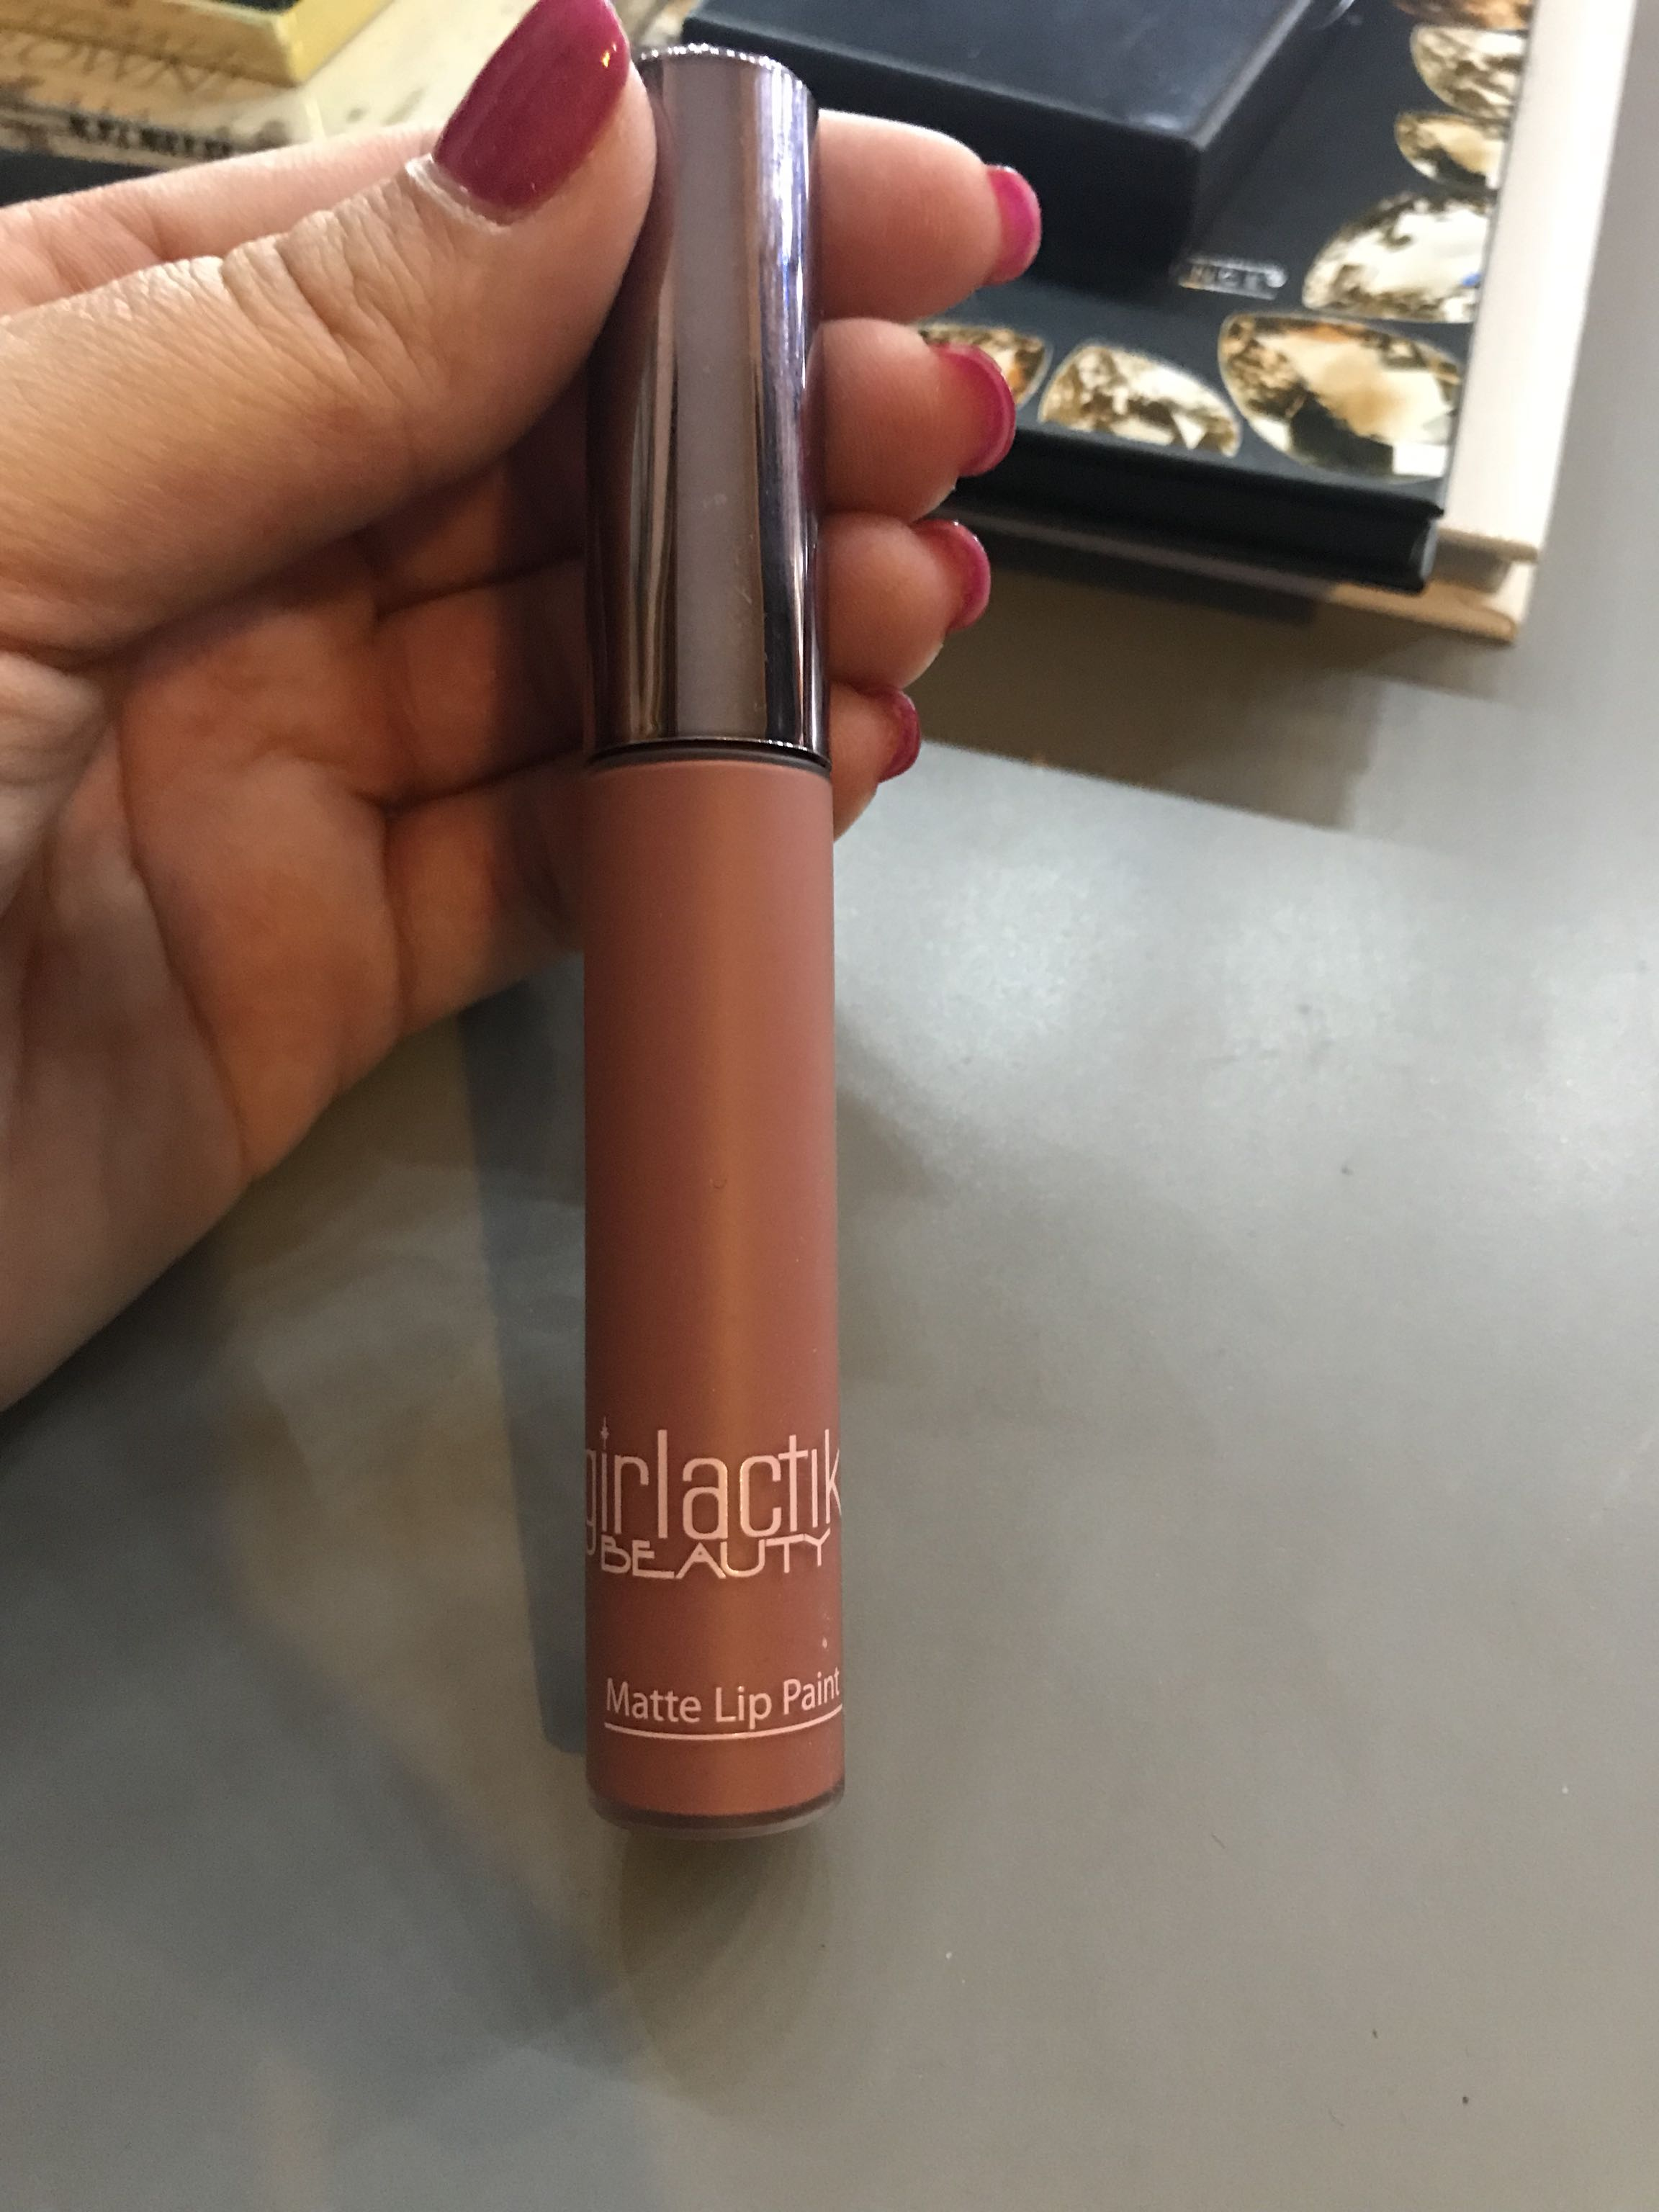 Girlactik Beauty Matte lipstick